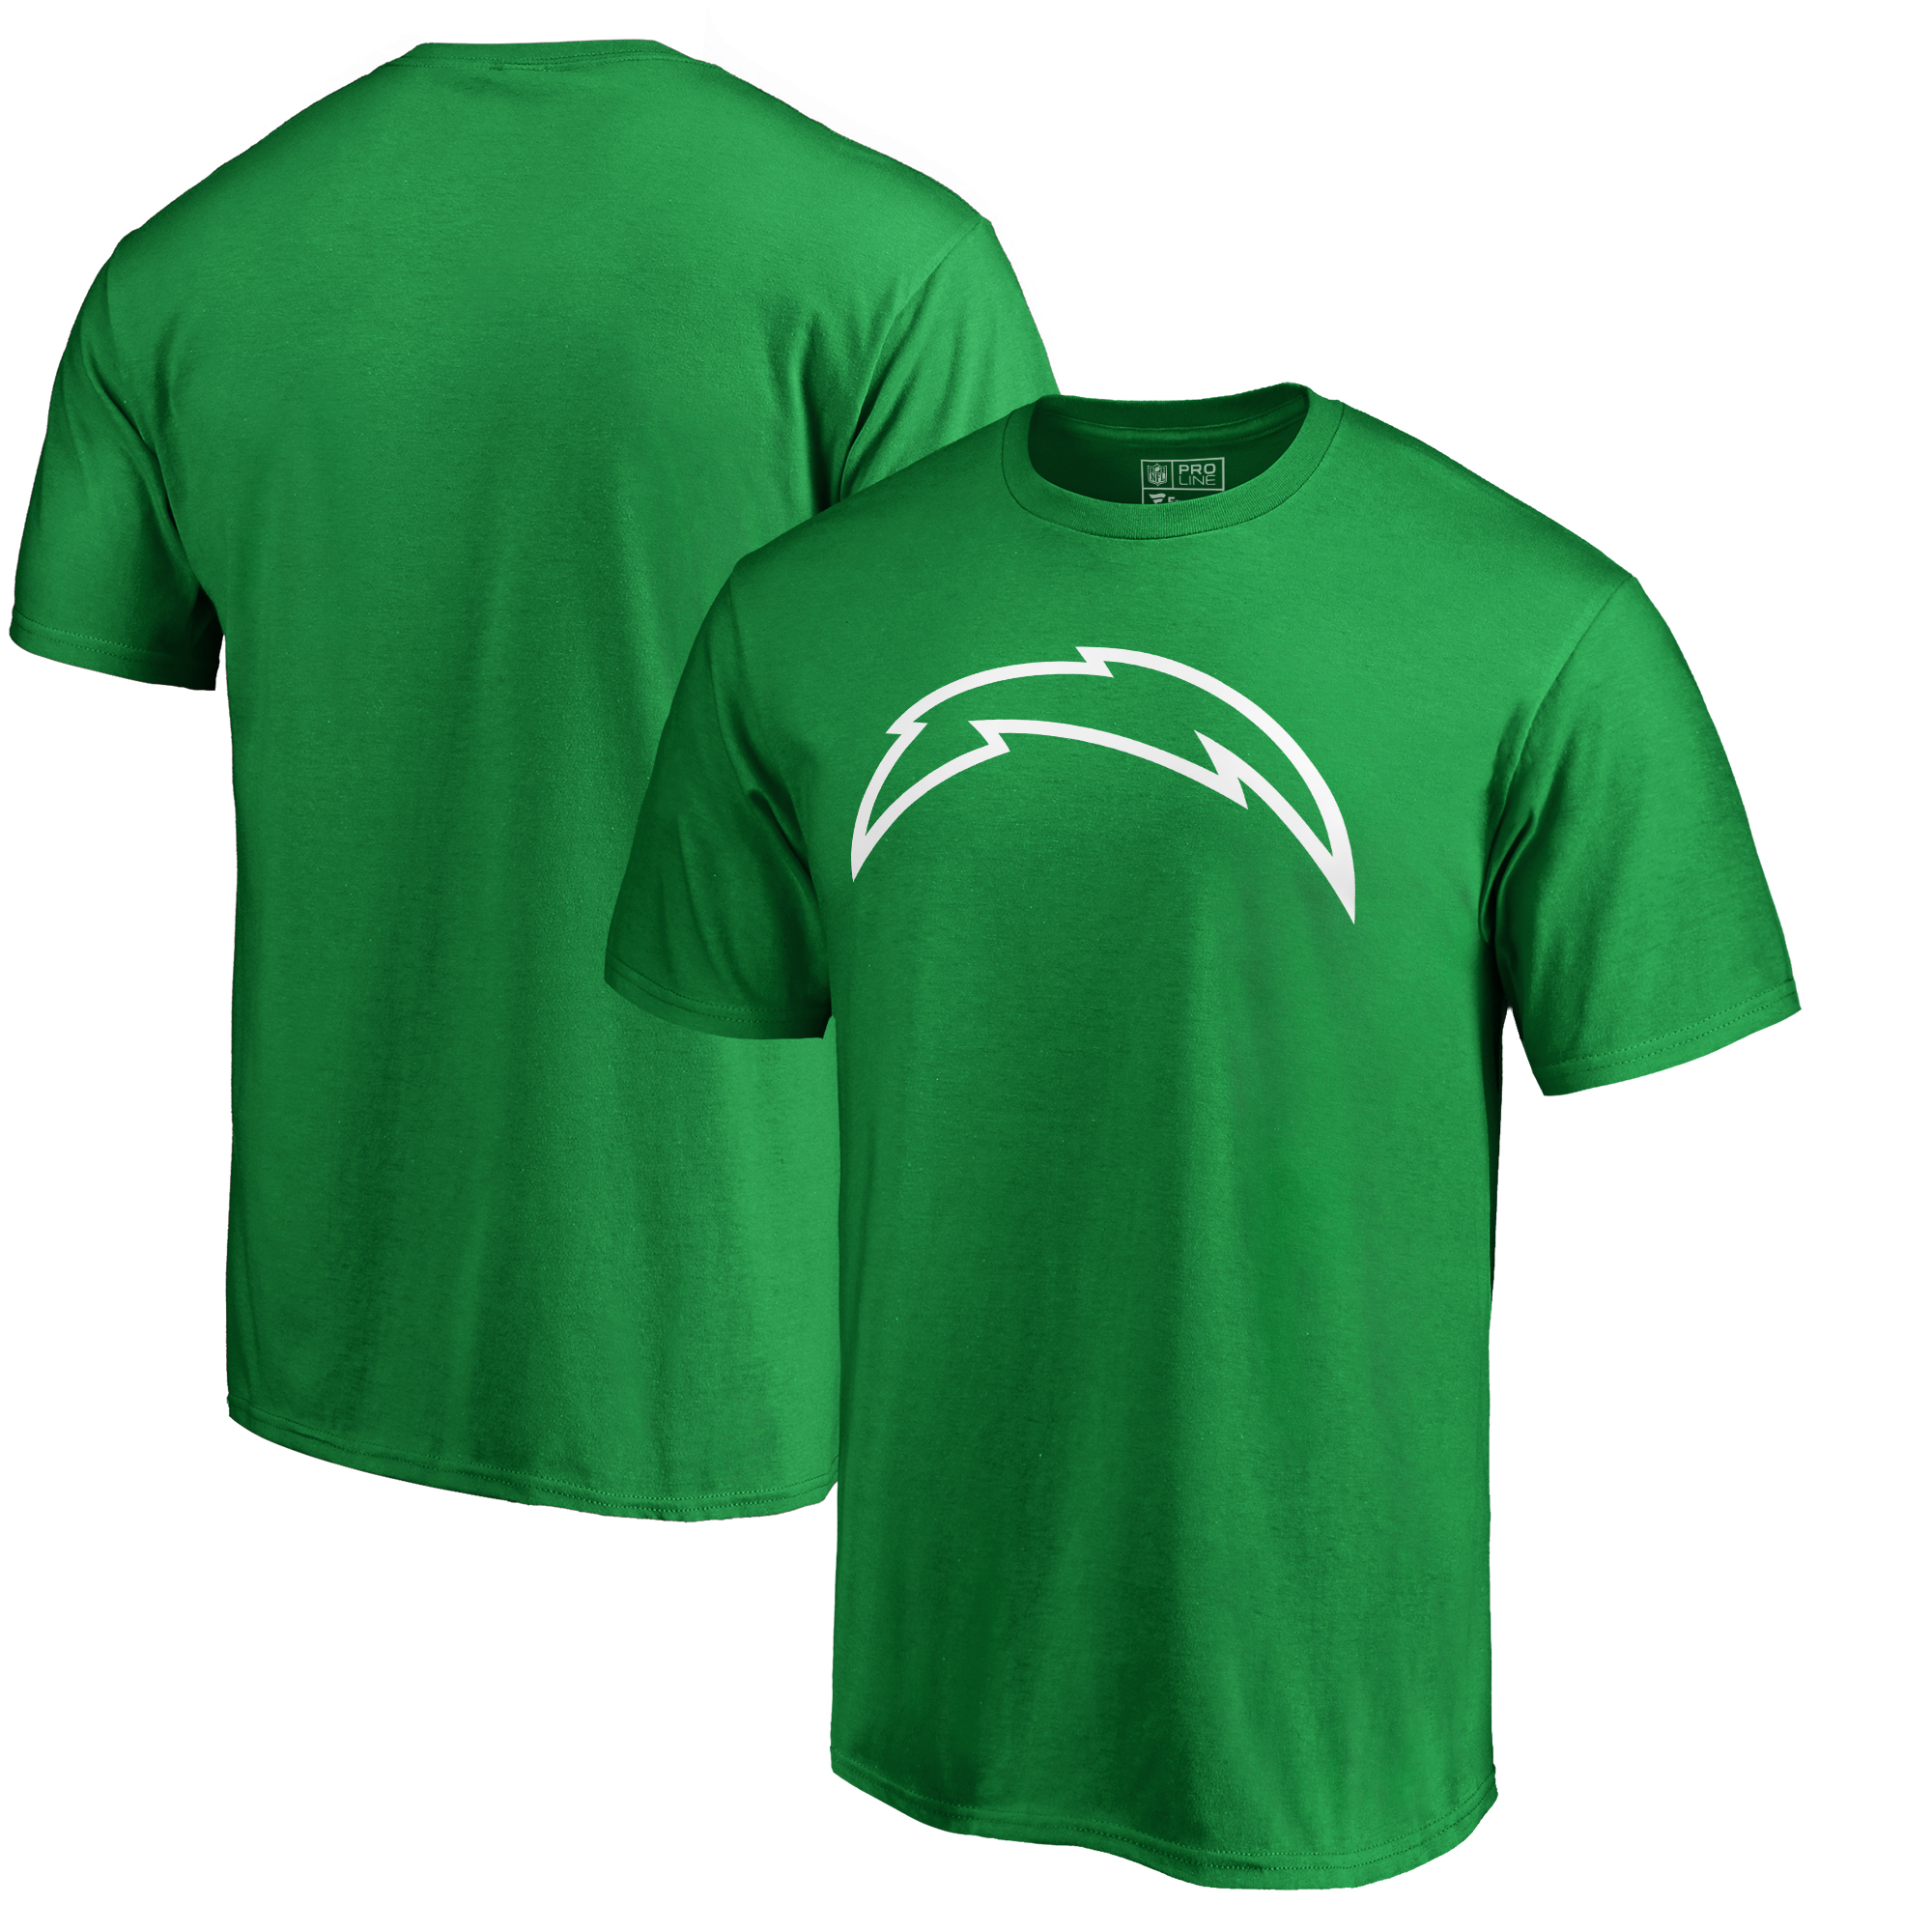 Los Angeles Chargers Fanatics Branded St. Patrick's Day White Logo T-Shirt - Green